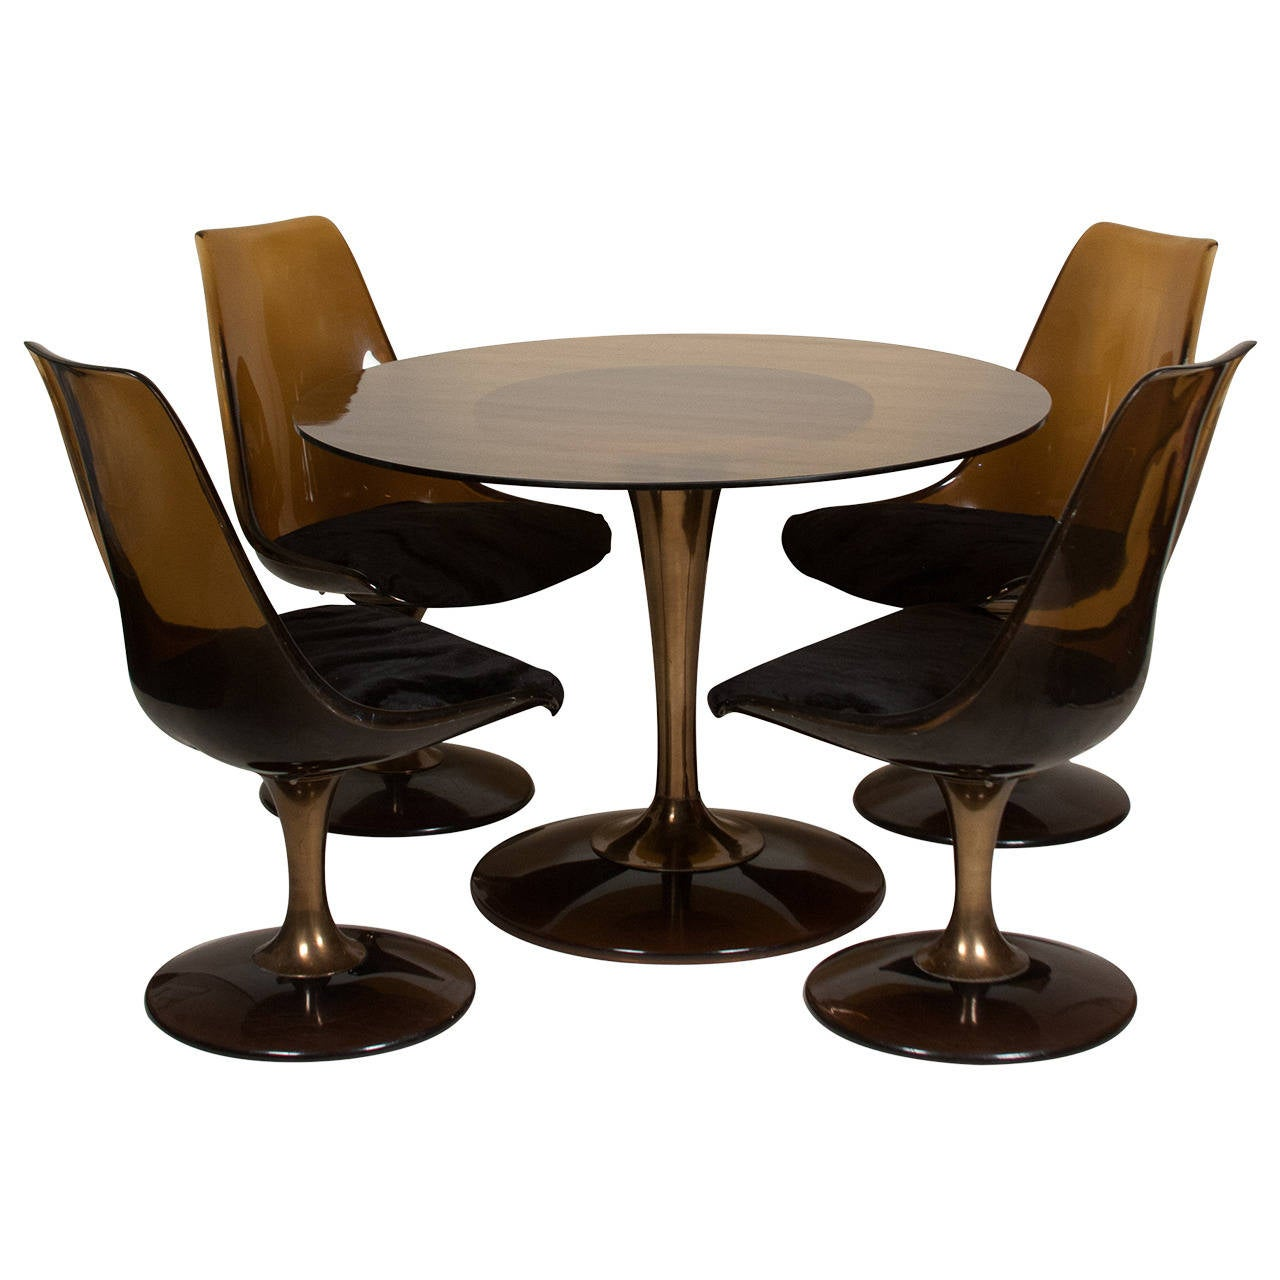 Glass Chair Amber Glass Top Tulip Dining Table And Chairs For Sale At